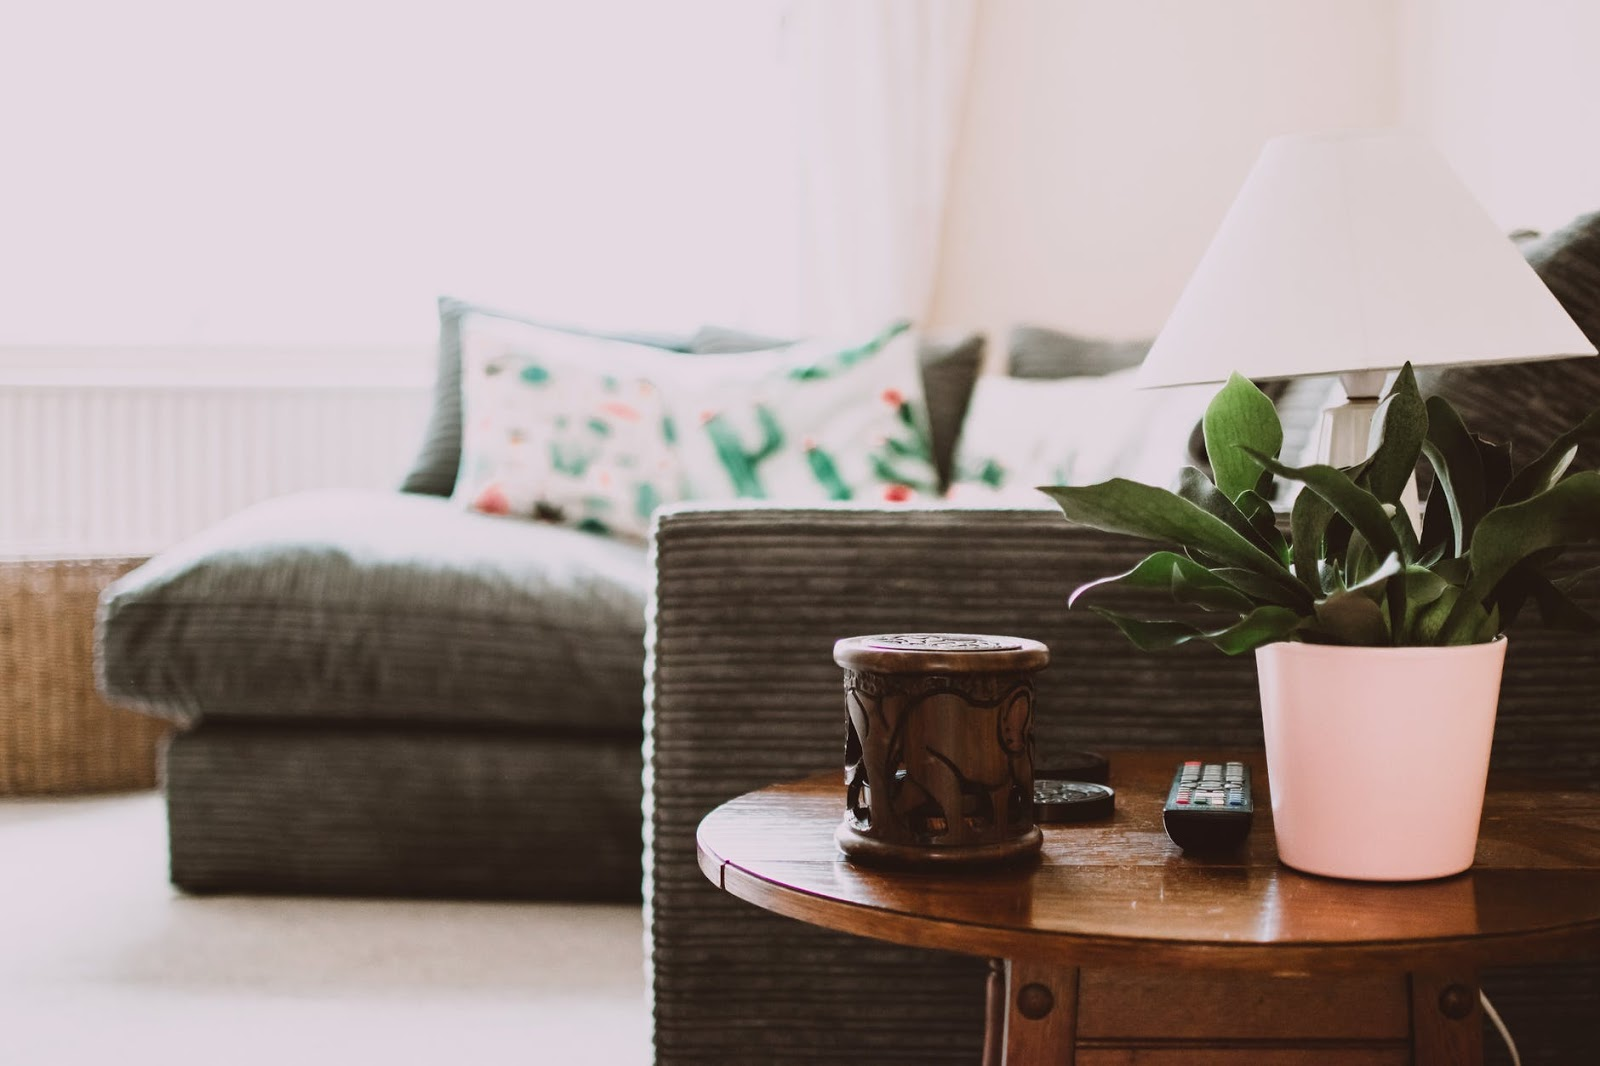 A Round Brown Wooden End Table with a plant on top and a brown L-shaped sofa in the background.